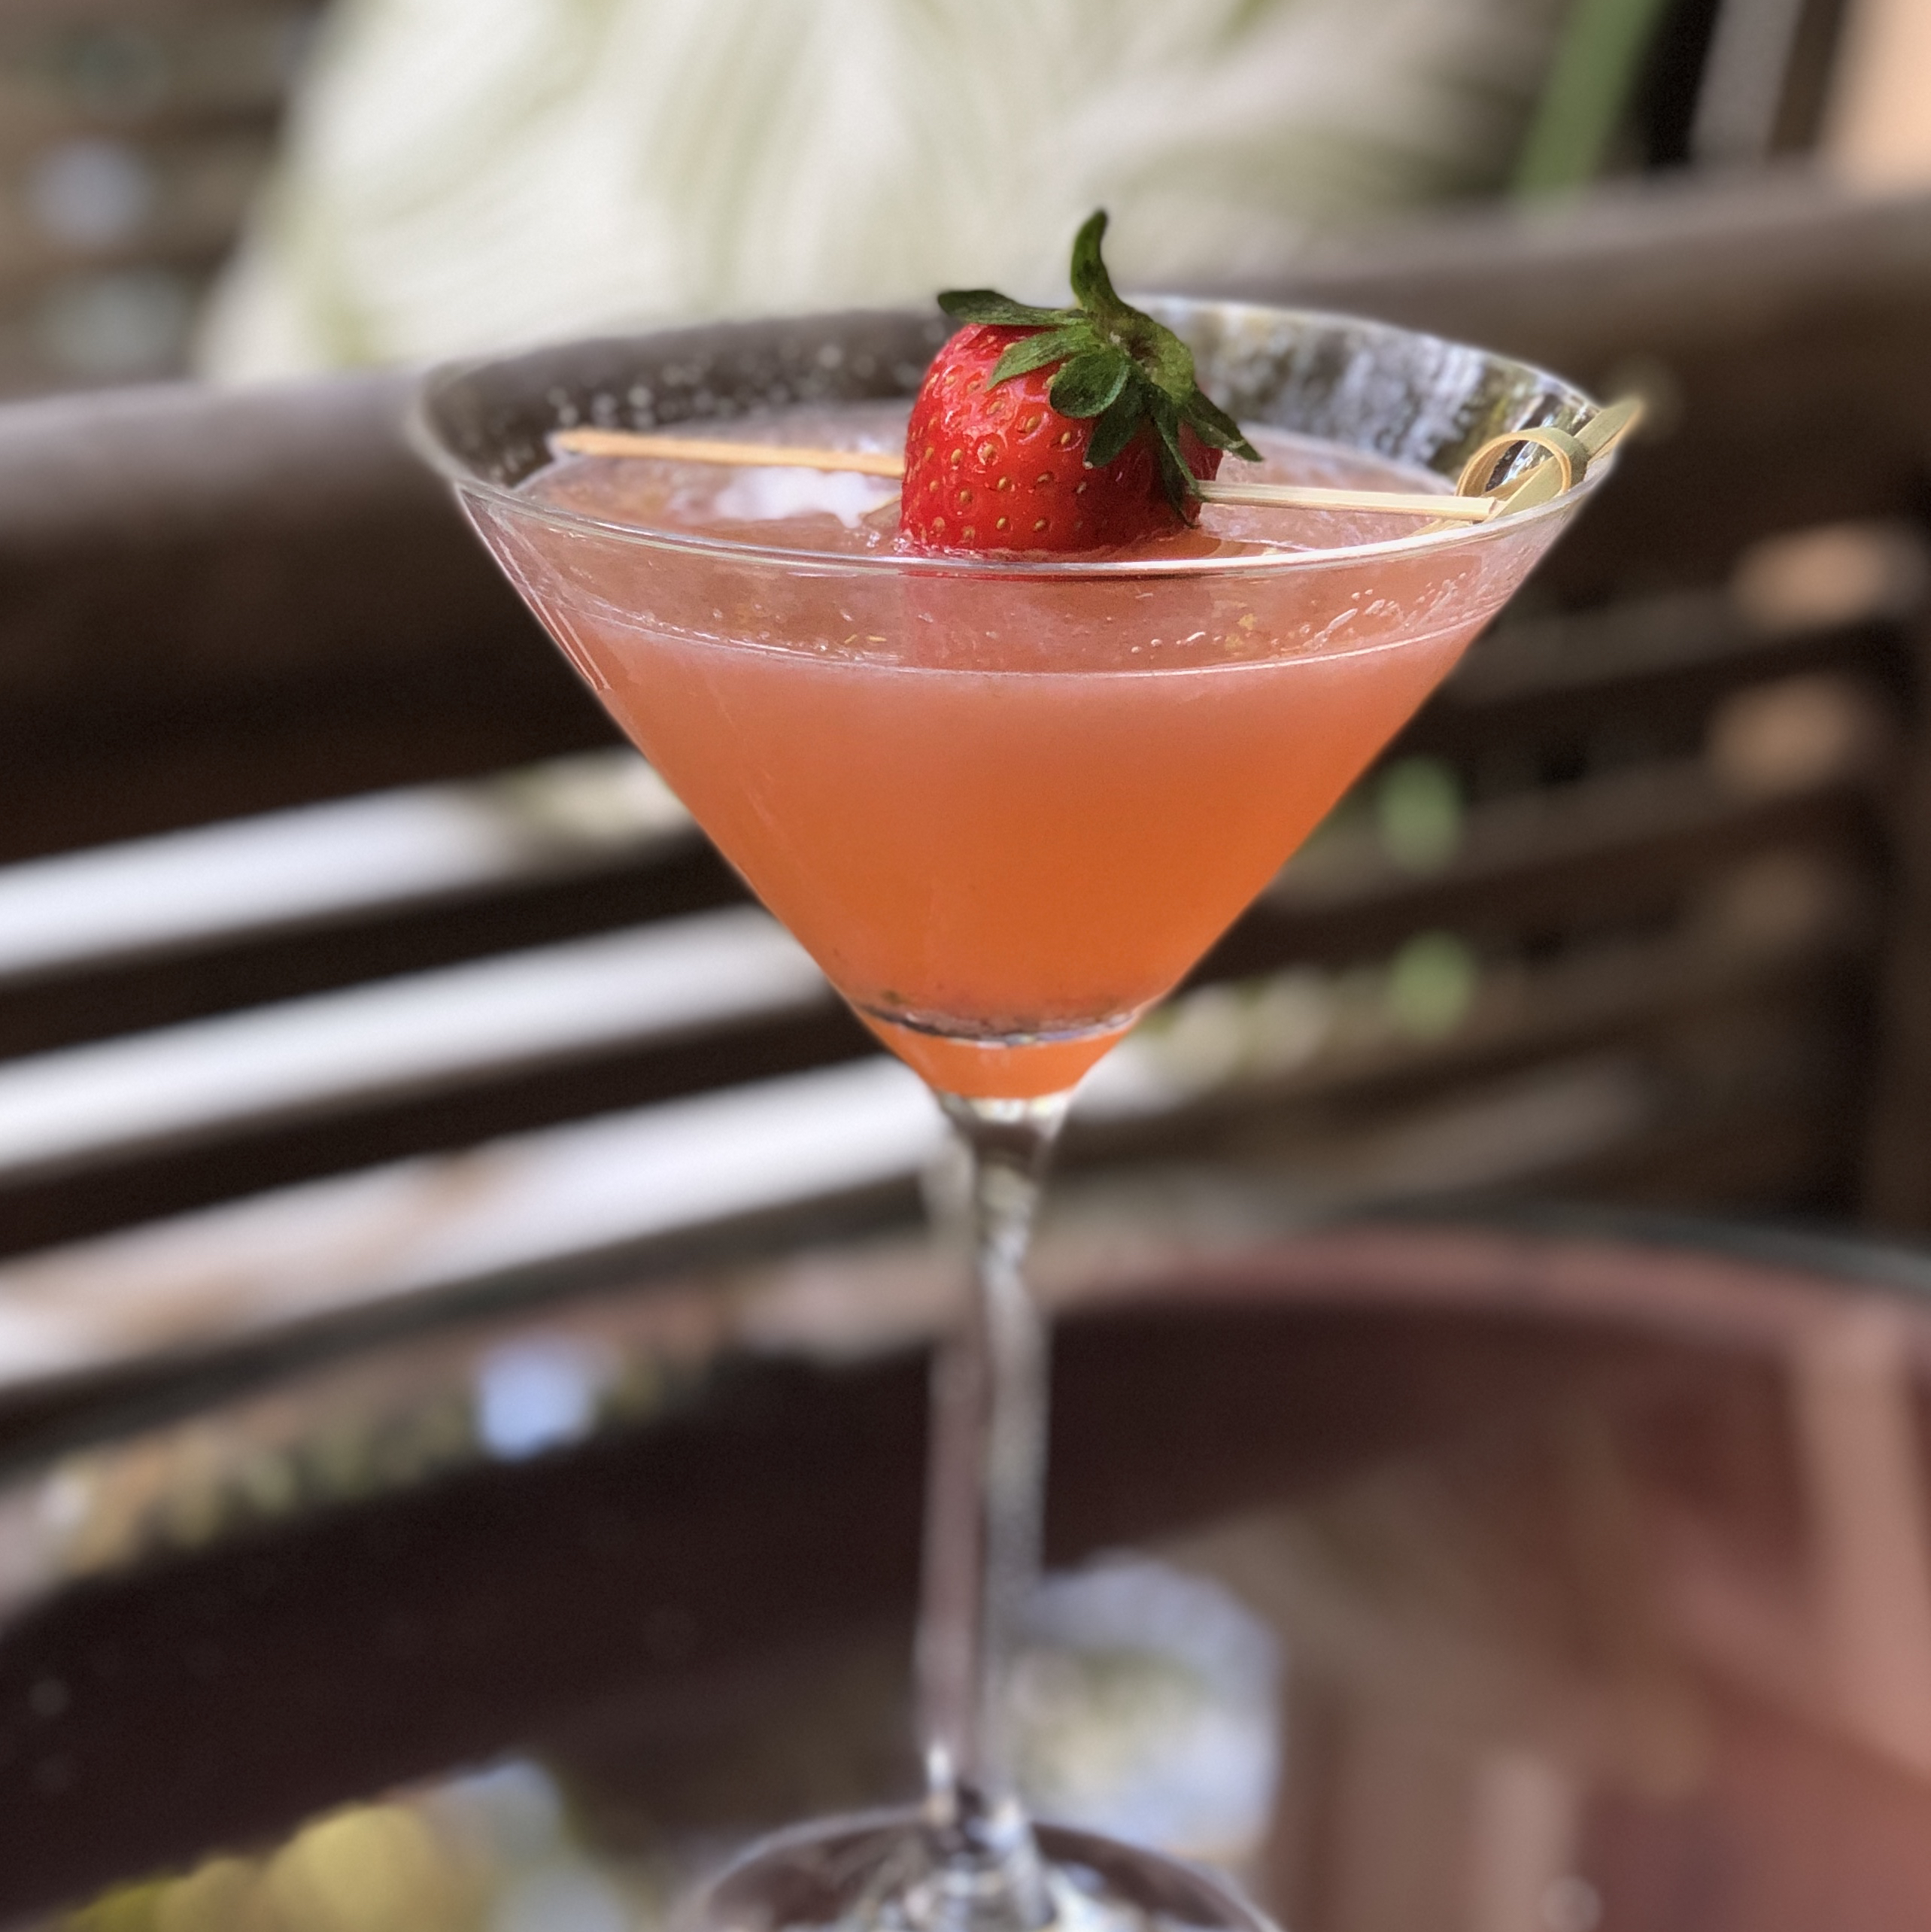 Strawberry-Gin Cocktail sbh2061